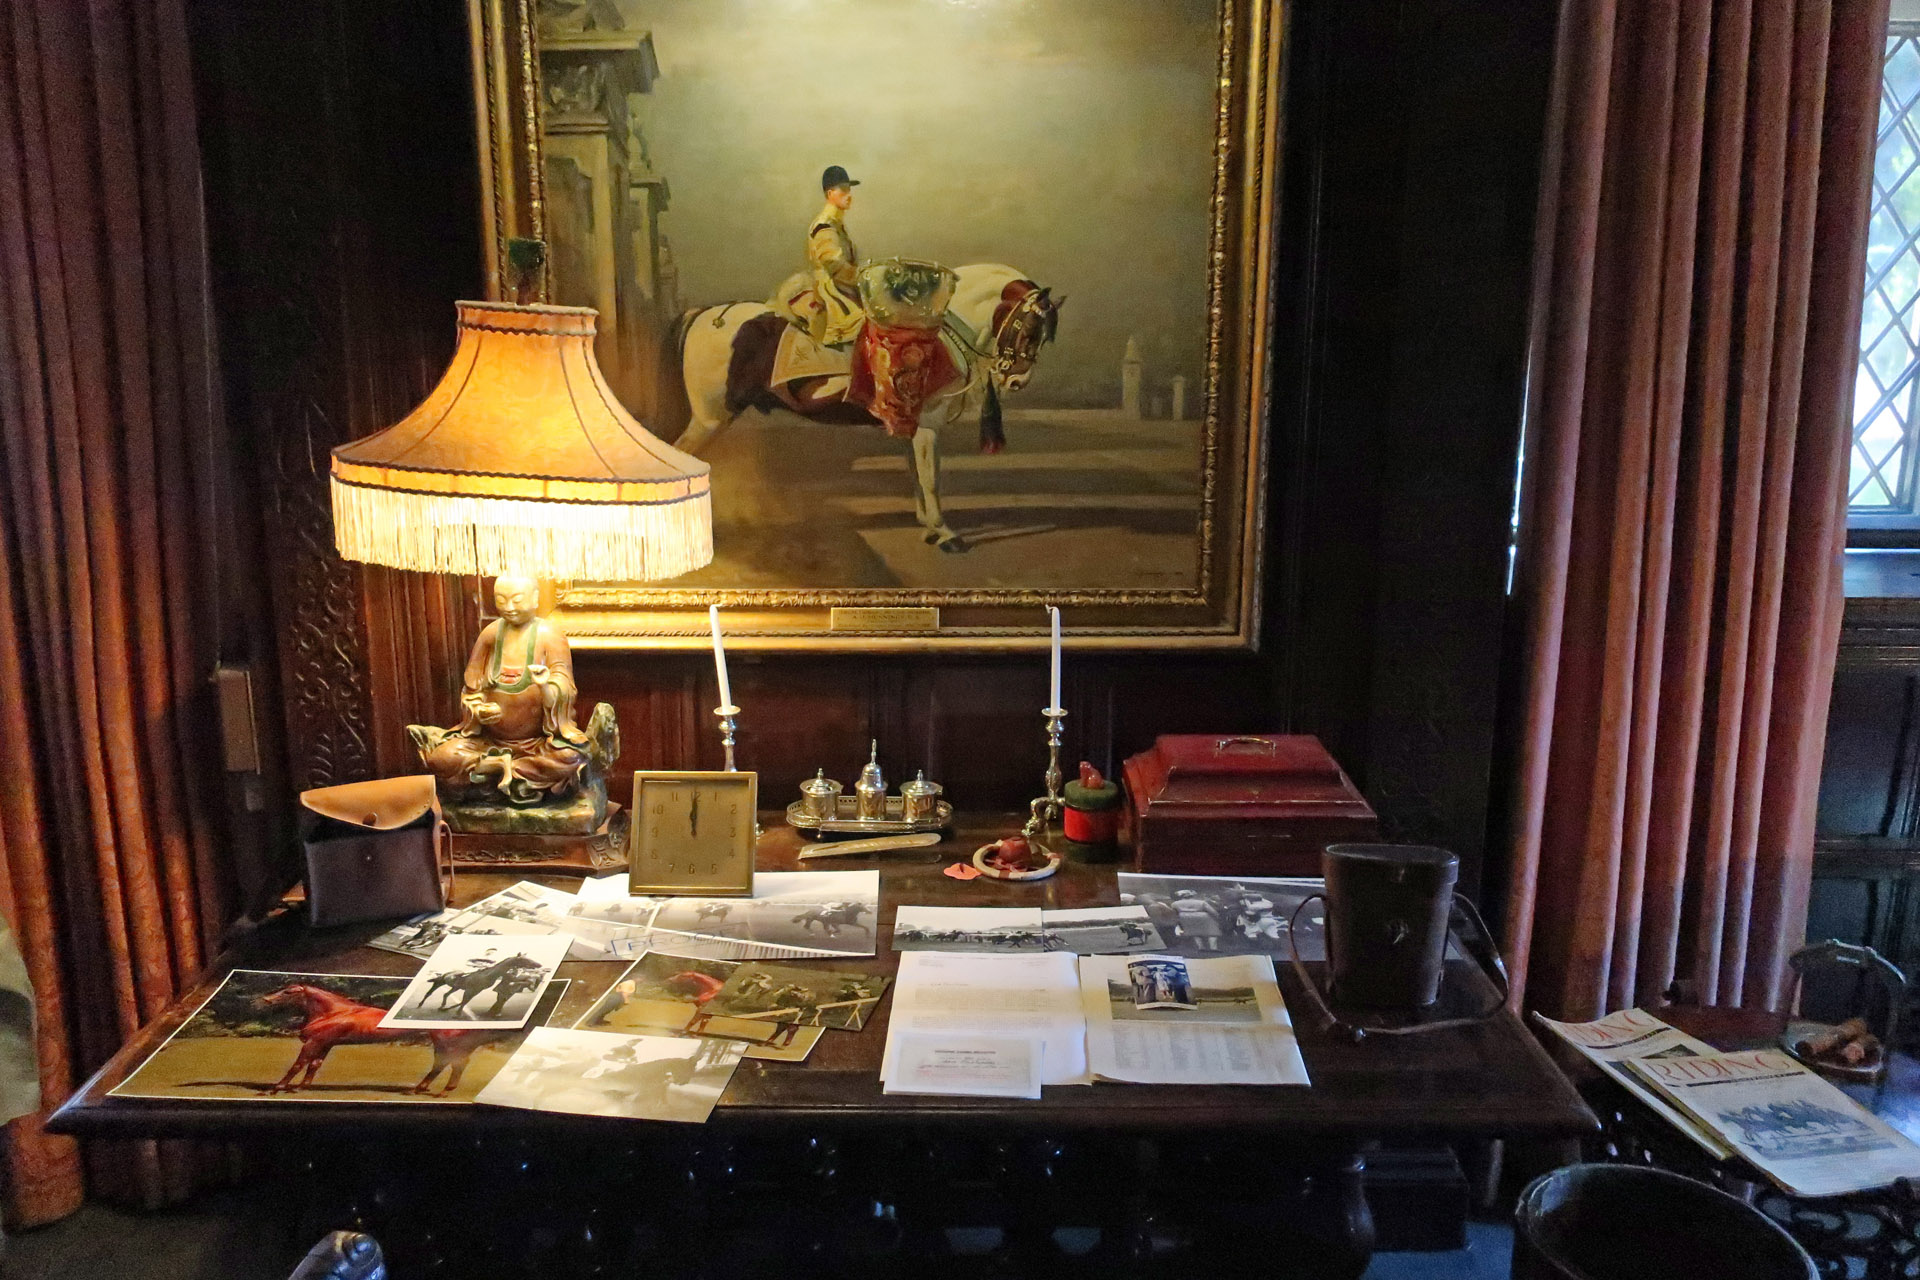 Lord Fairhaven's desk, anglesey abbey, cambridgeshire